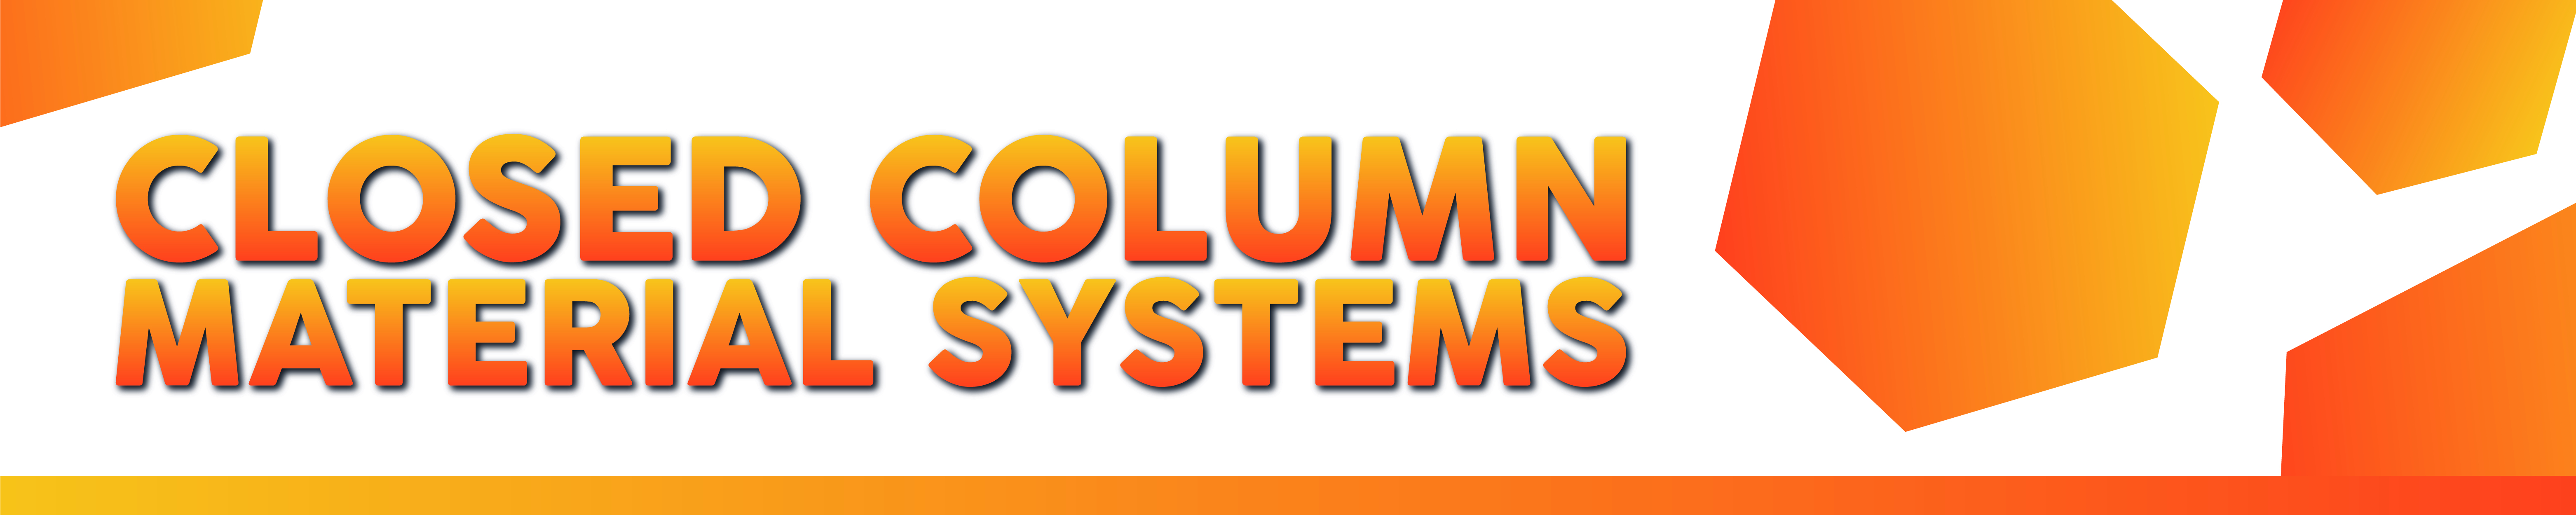 Closed Column Material Systems